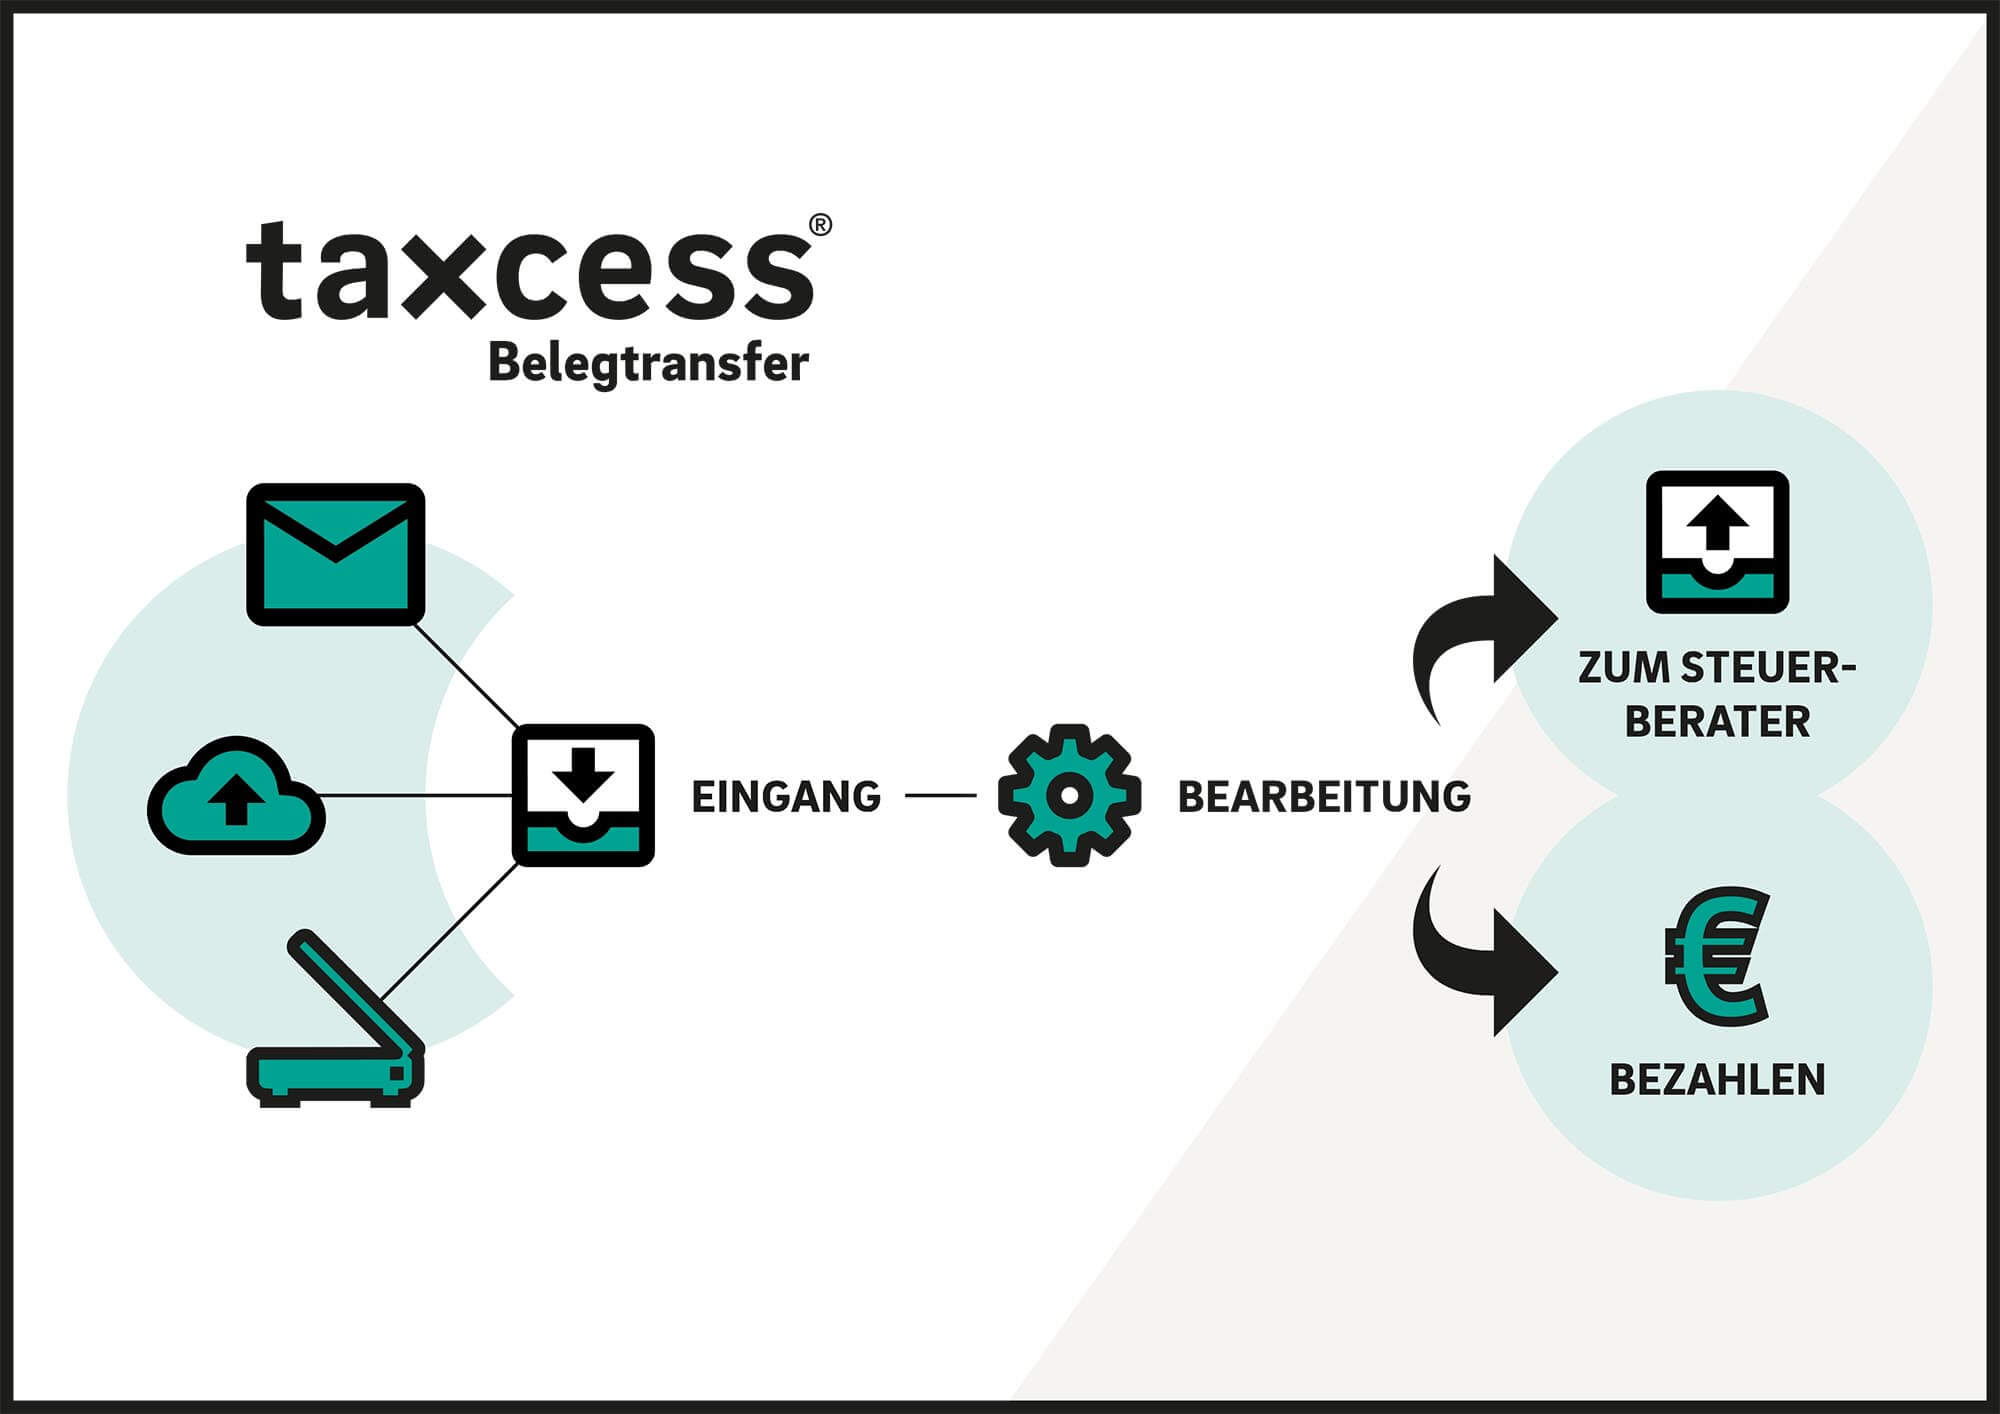 taxcess®-Belegtransfer